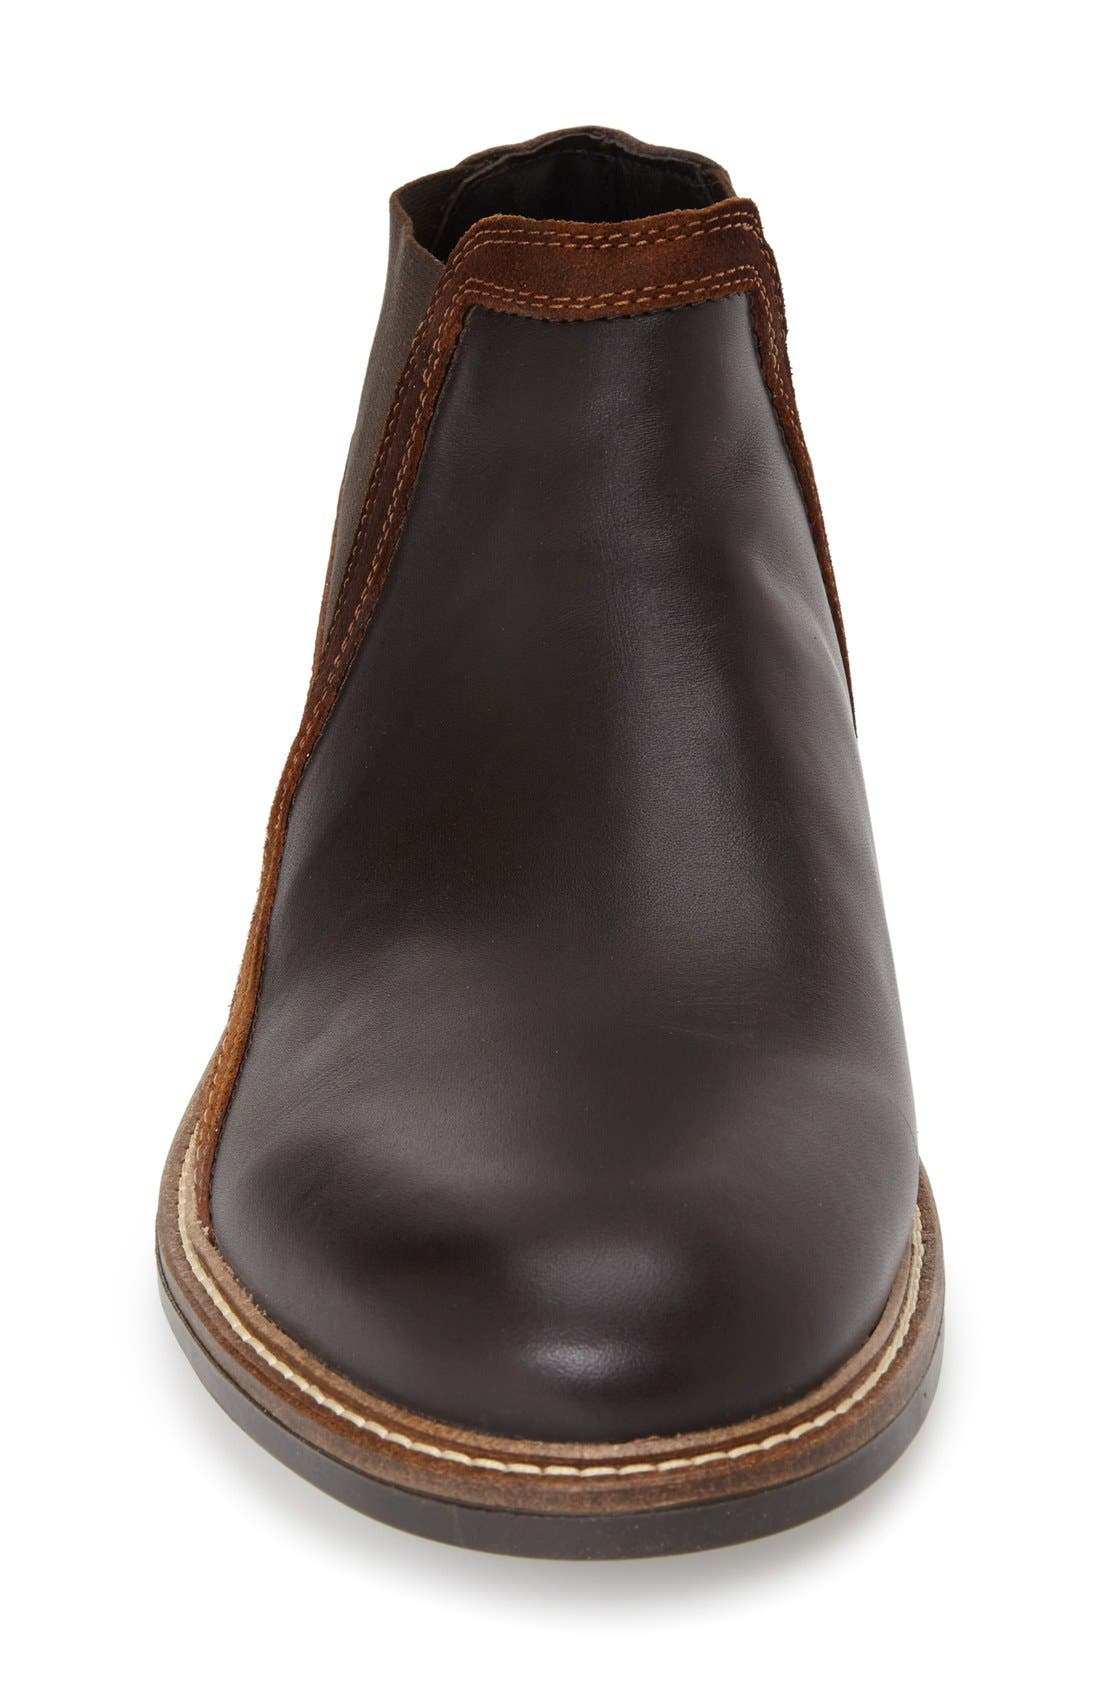 Business Chelsea Boot,                             Alternate thumbnail 3, color,                             ROAST/SADDLE/ SEAL BROWN SUEDE